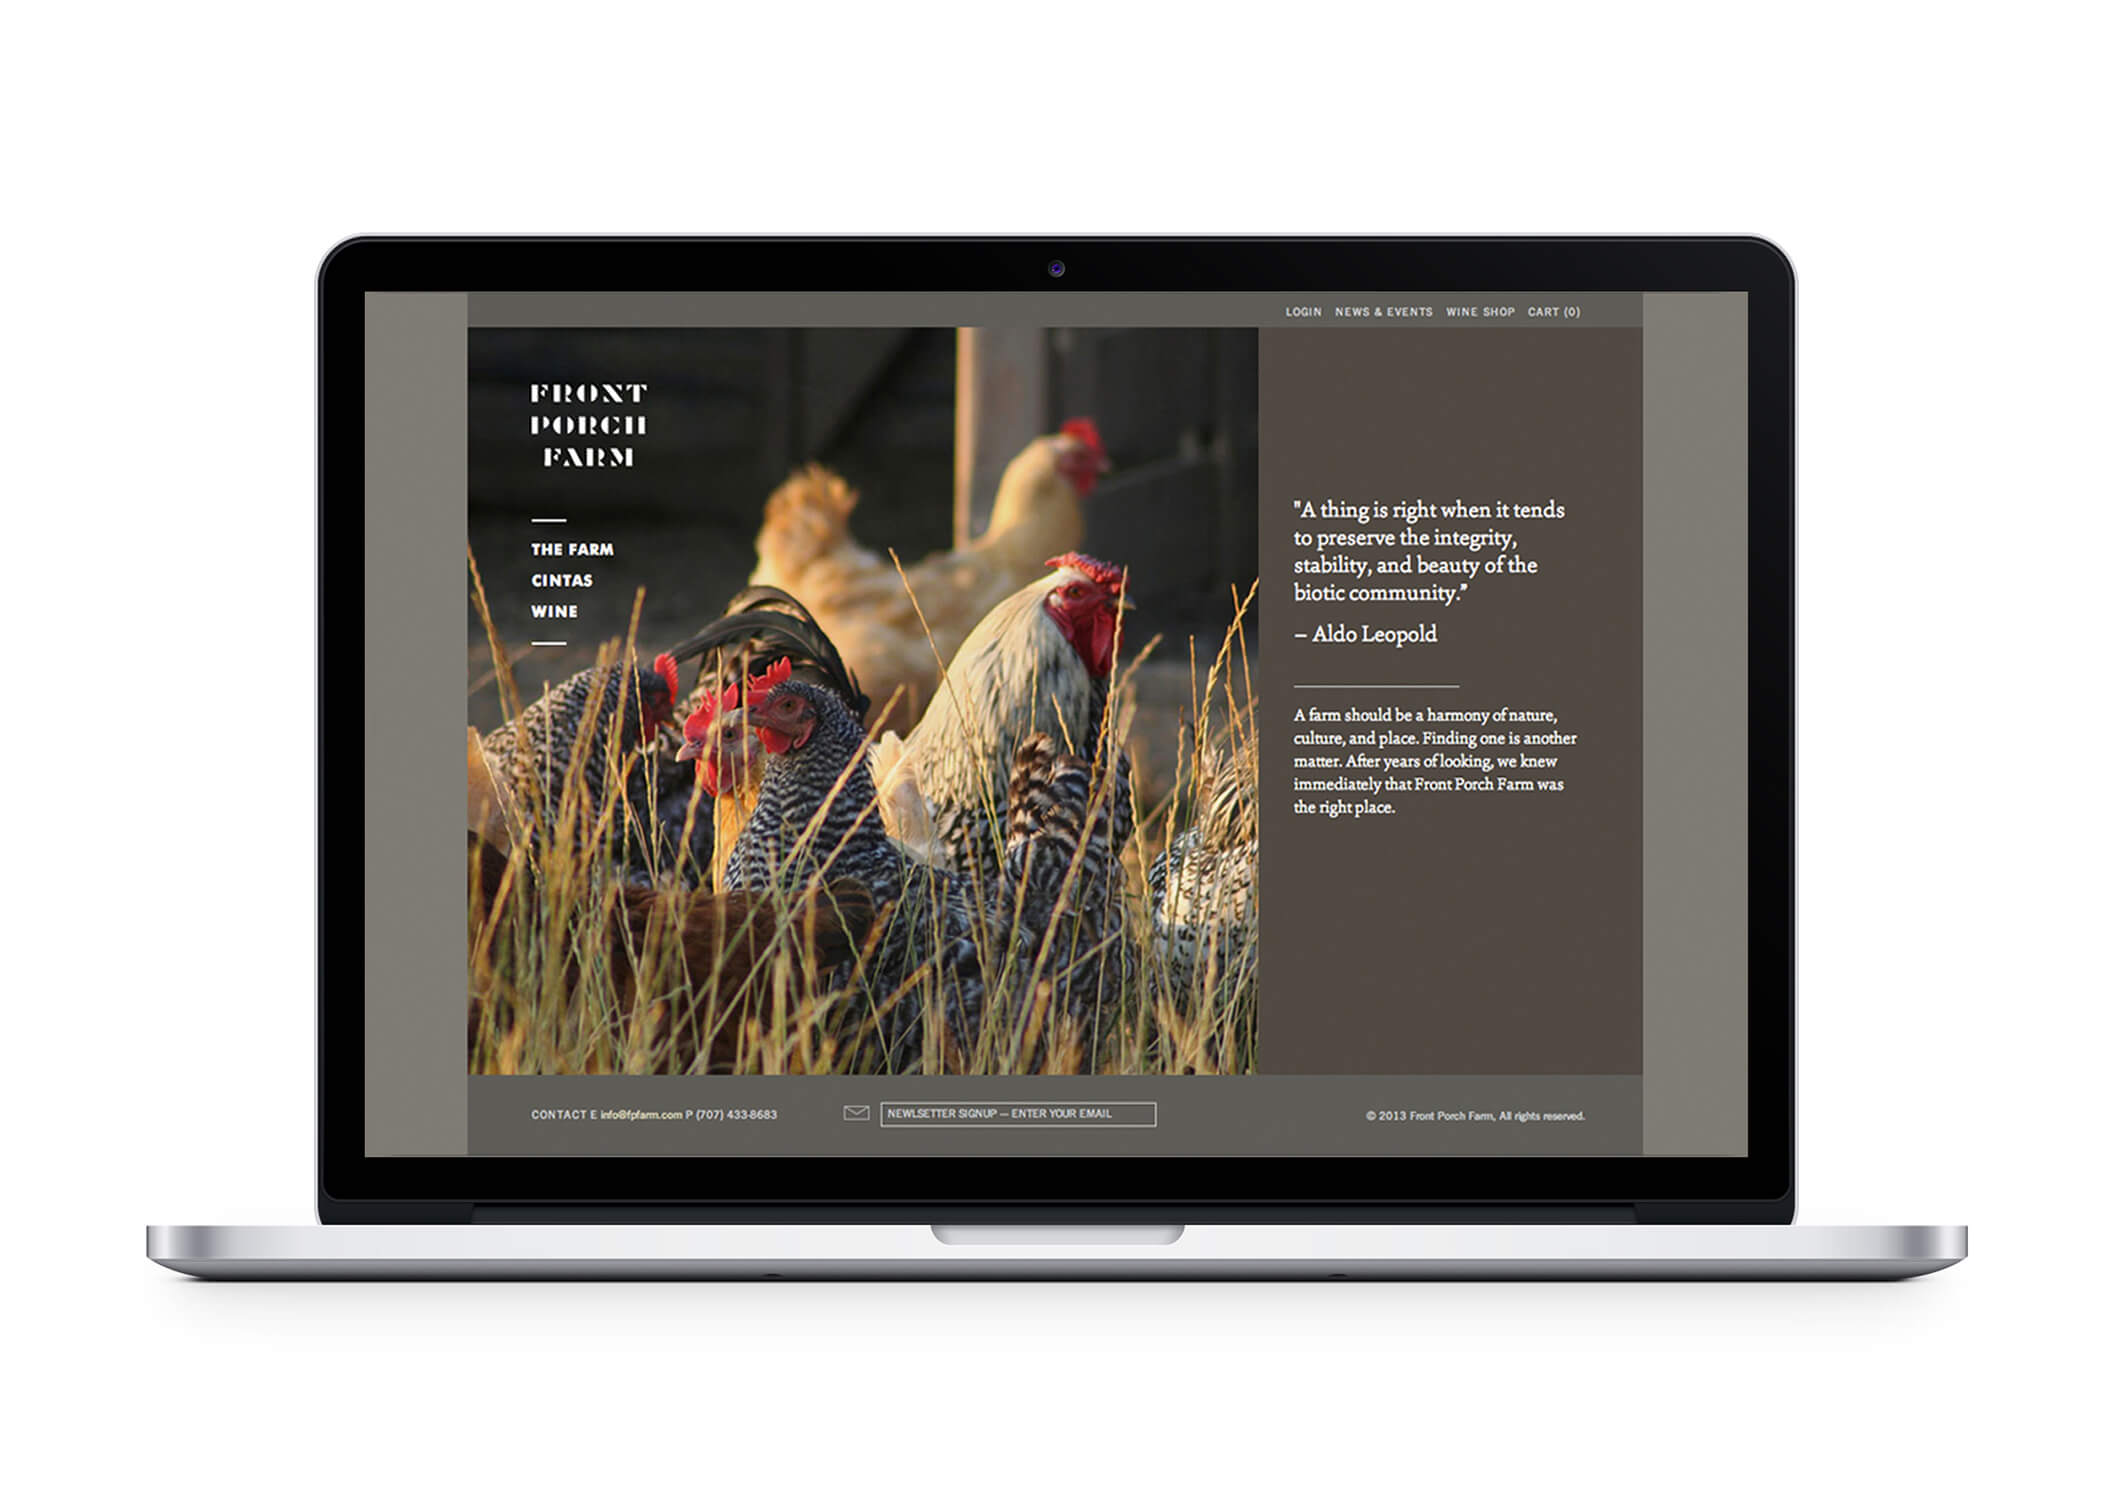 Front Porch Farm webpage on laptop featuring chickens and text